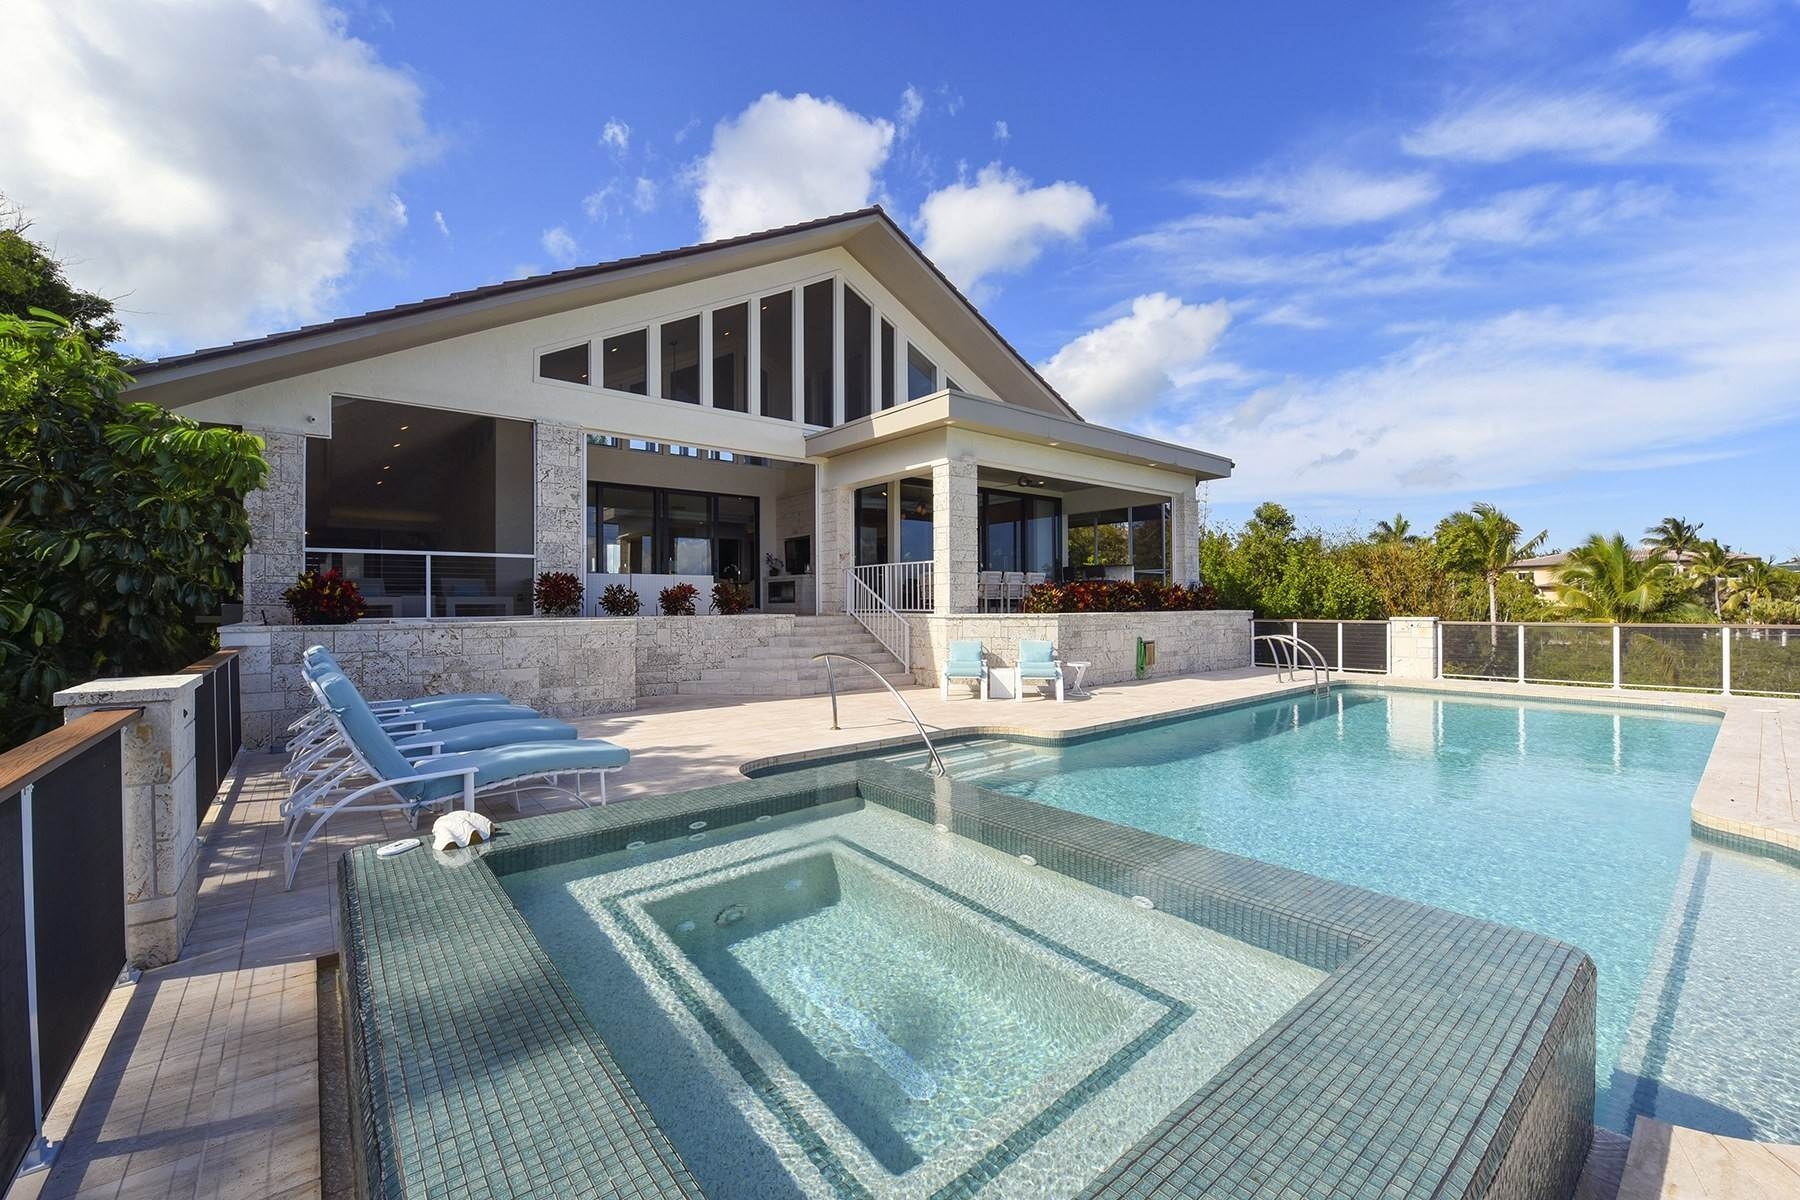 Single Family Homes for Sale at 11 Sunrise Cay Drive Key Largo, Florida 33037 United States